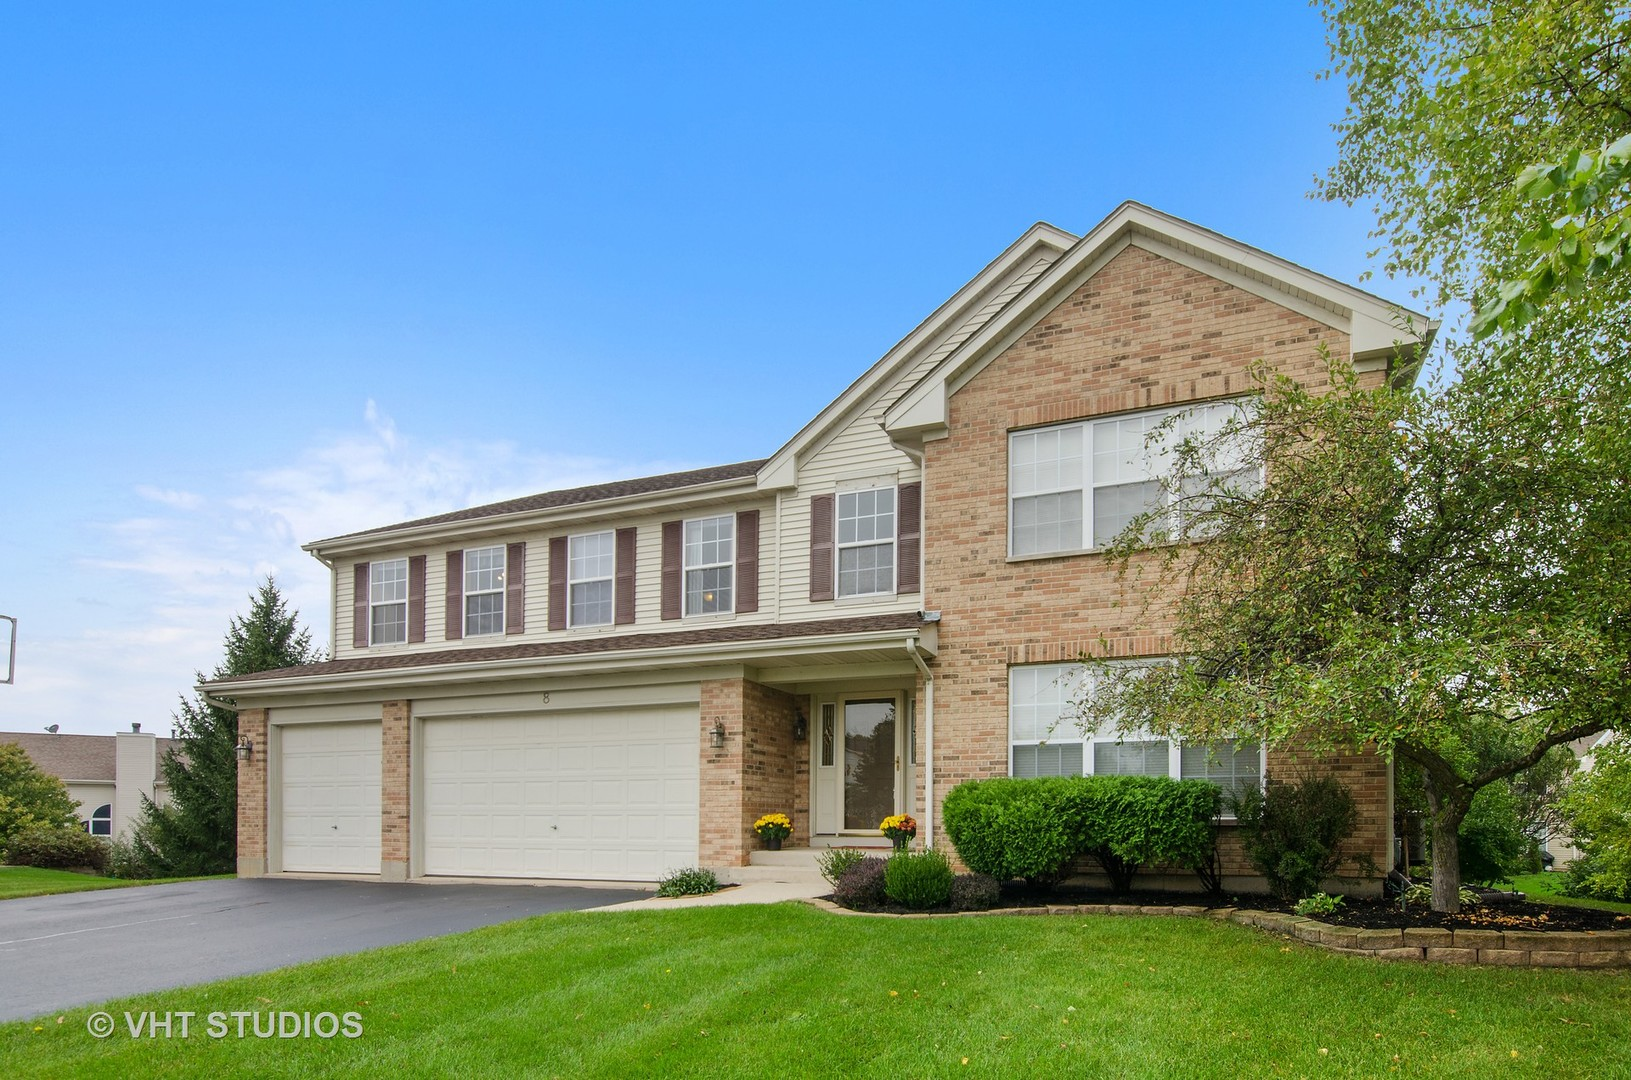 8 Lancaster Court, Algonquin in Kane County, IL 60102 Home for Sale